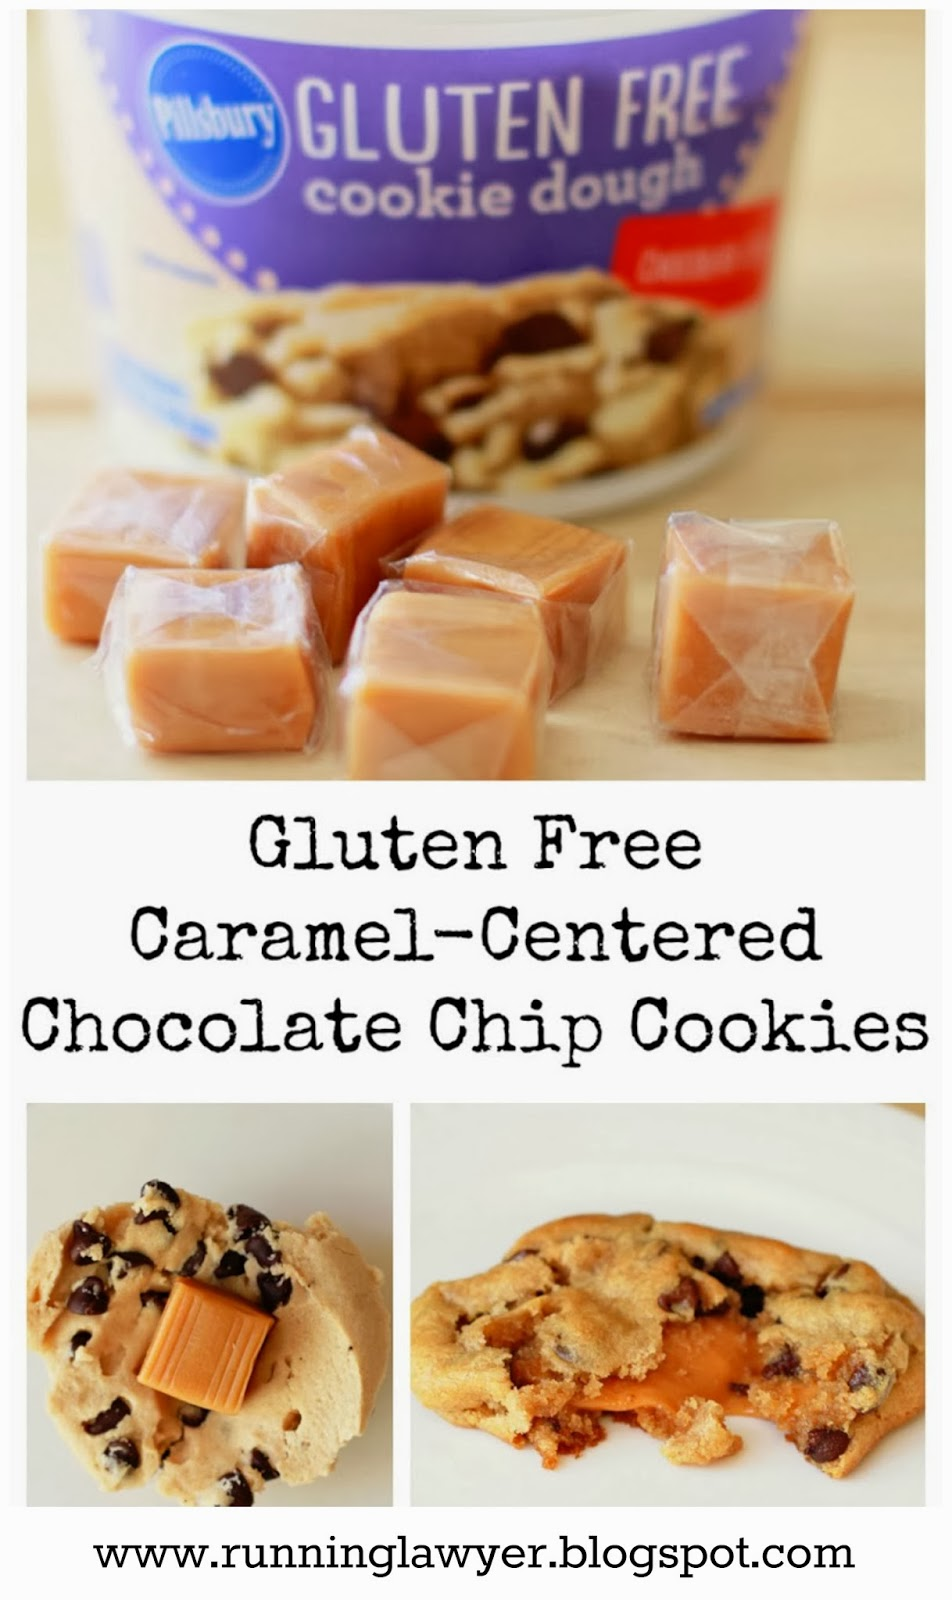 Running from the Law: Pillsbury Gluten Free Chocolate Chip Cookies